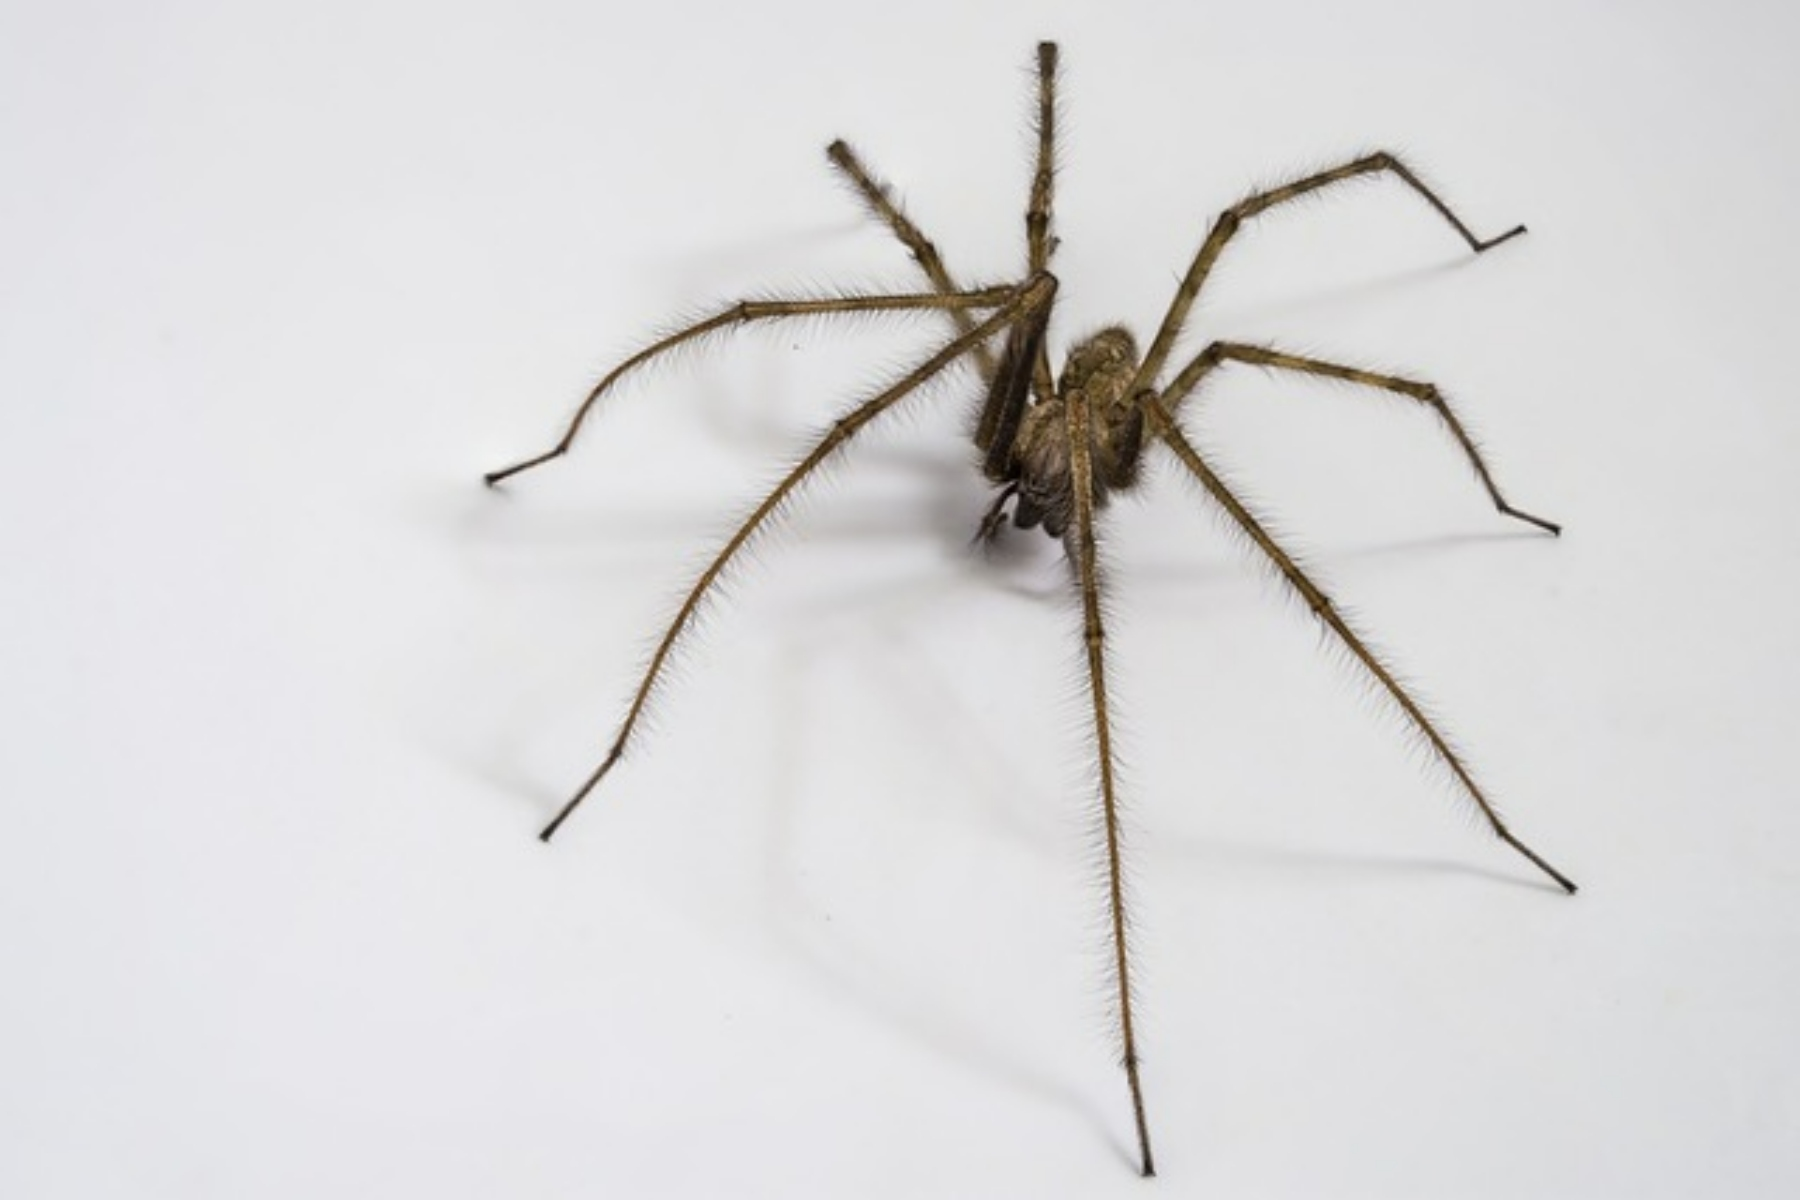 6 household items that will keep spiders out of your home